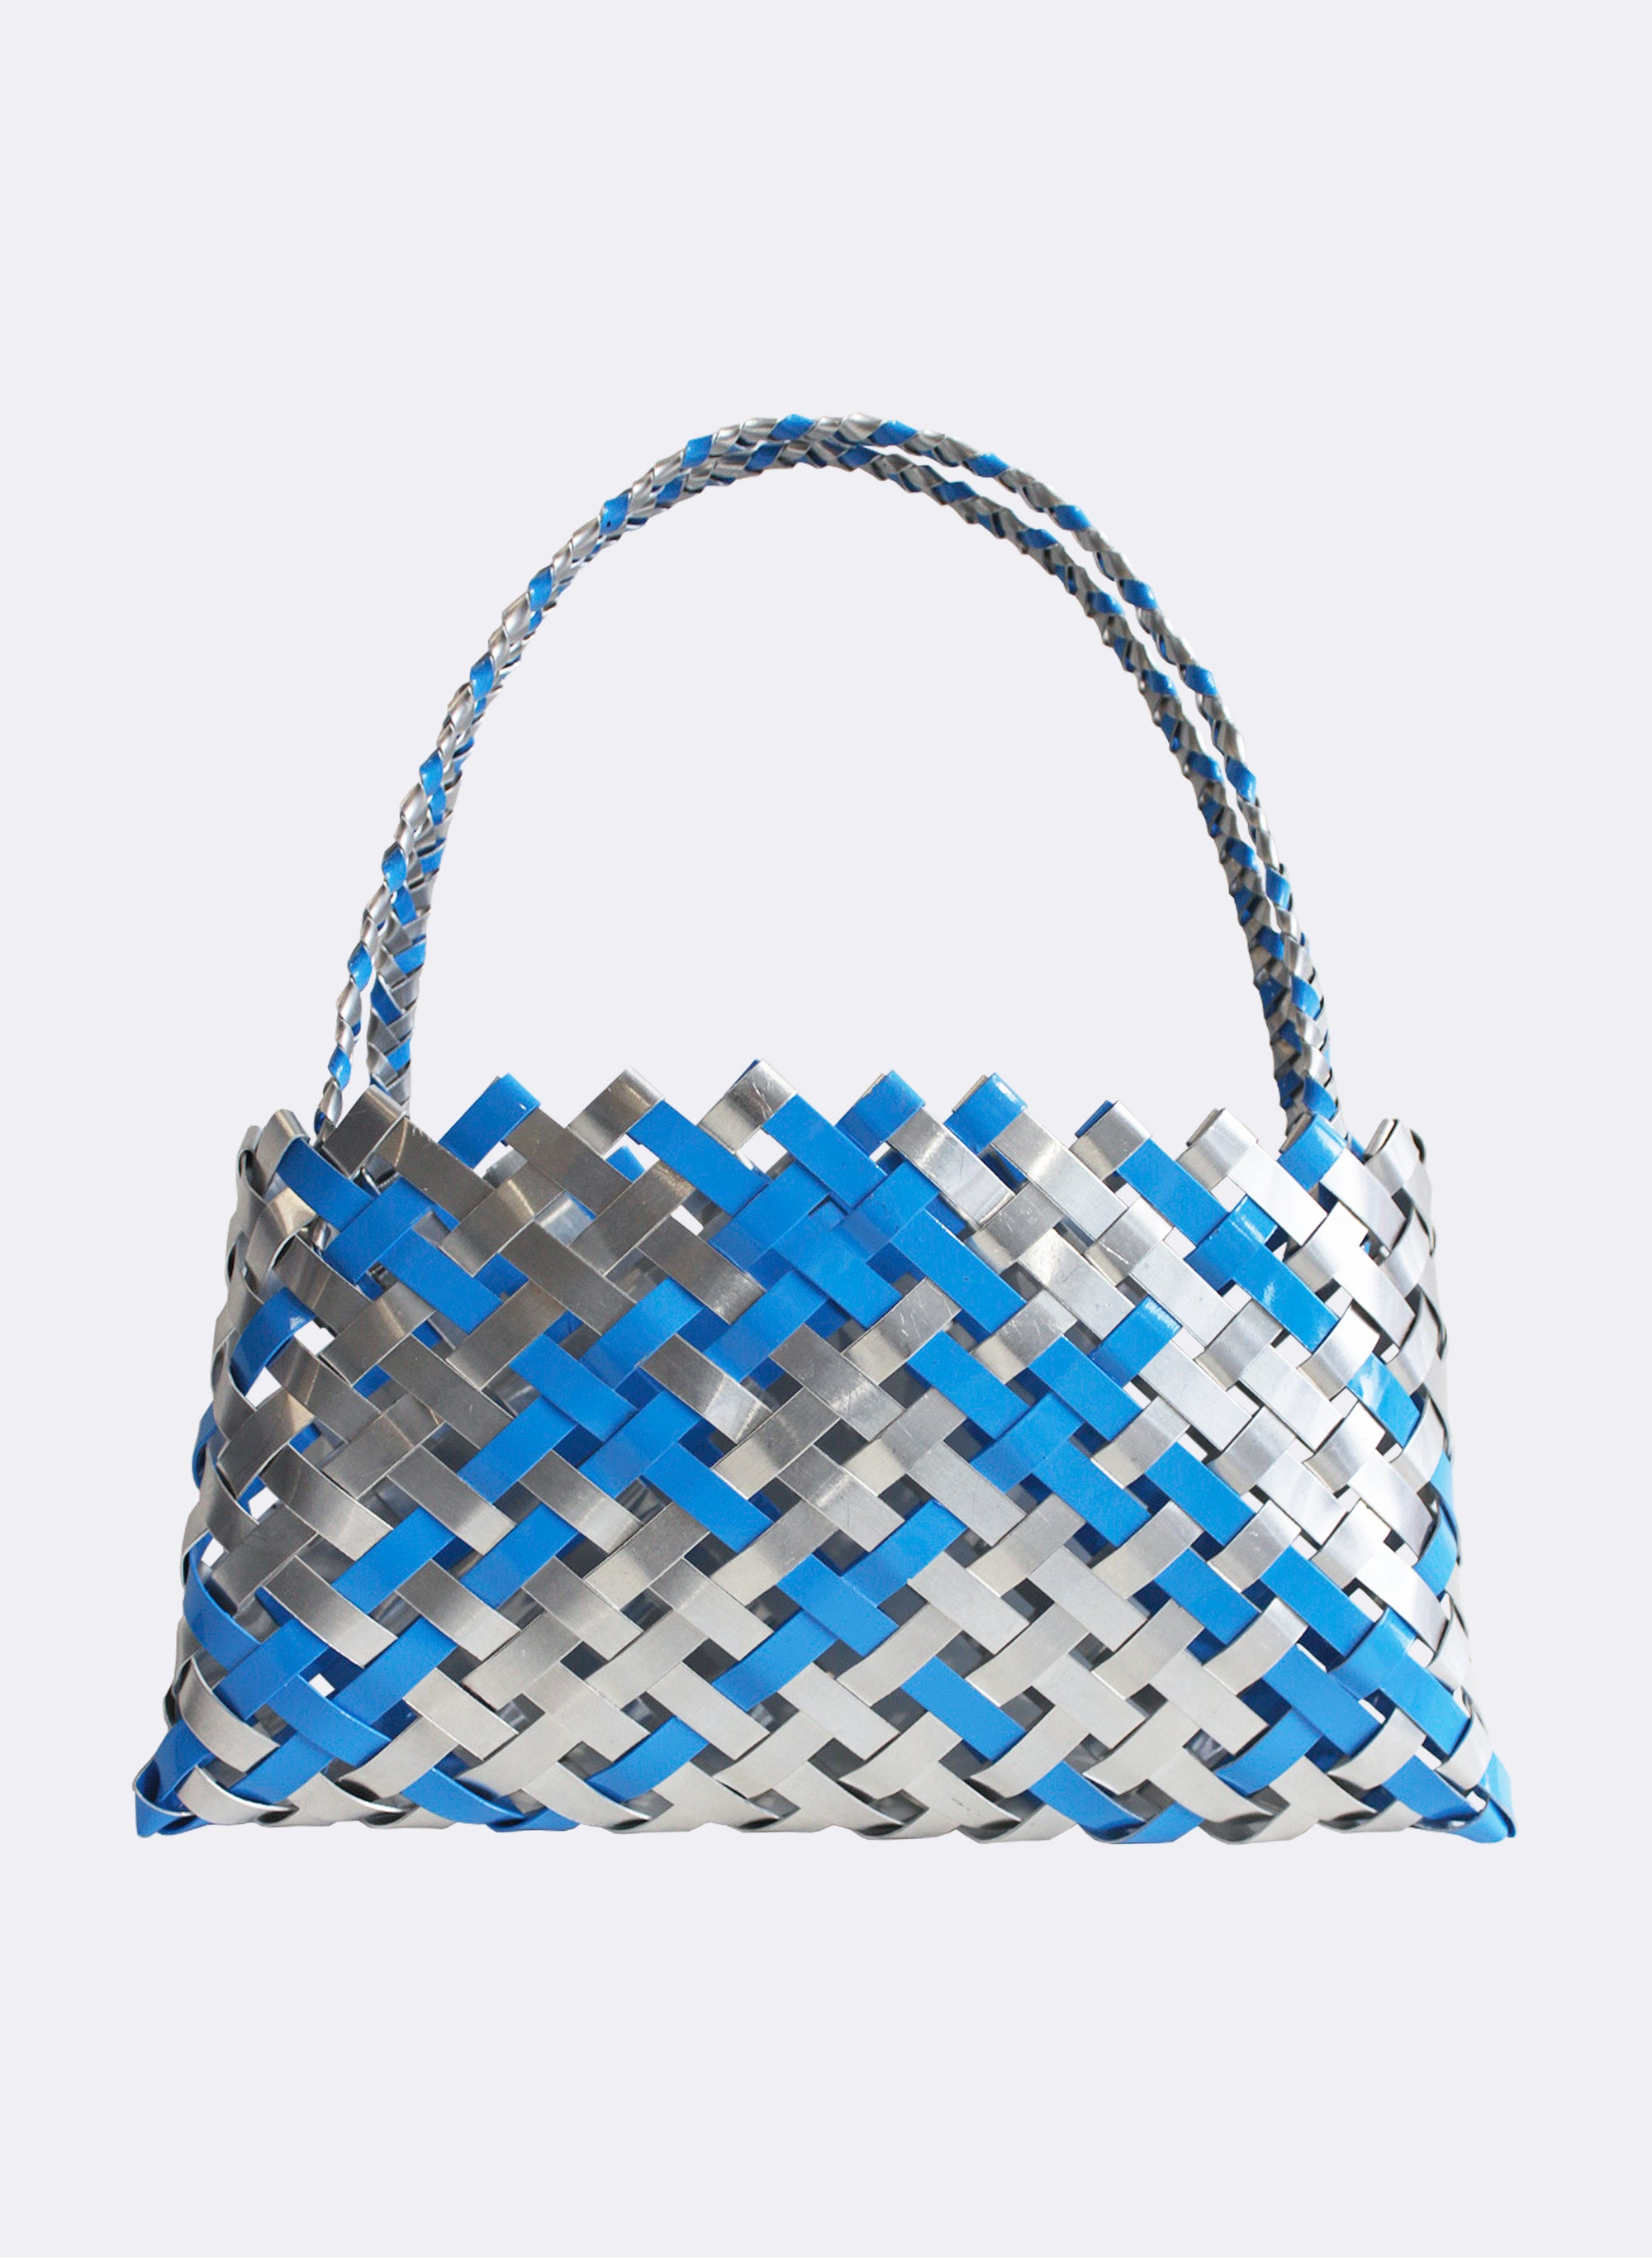 Aluminium And Blue Kete (12 End)